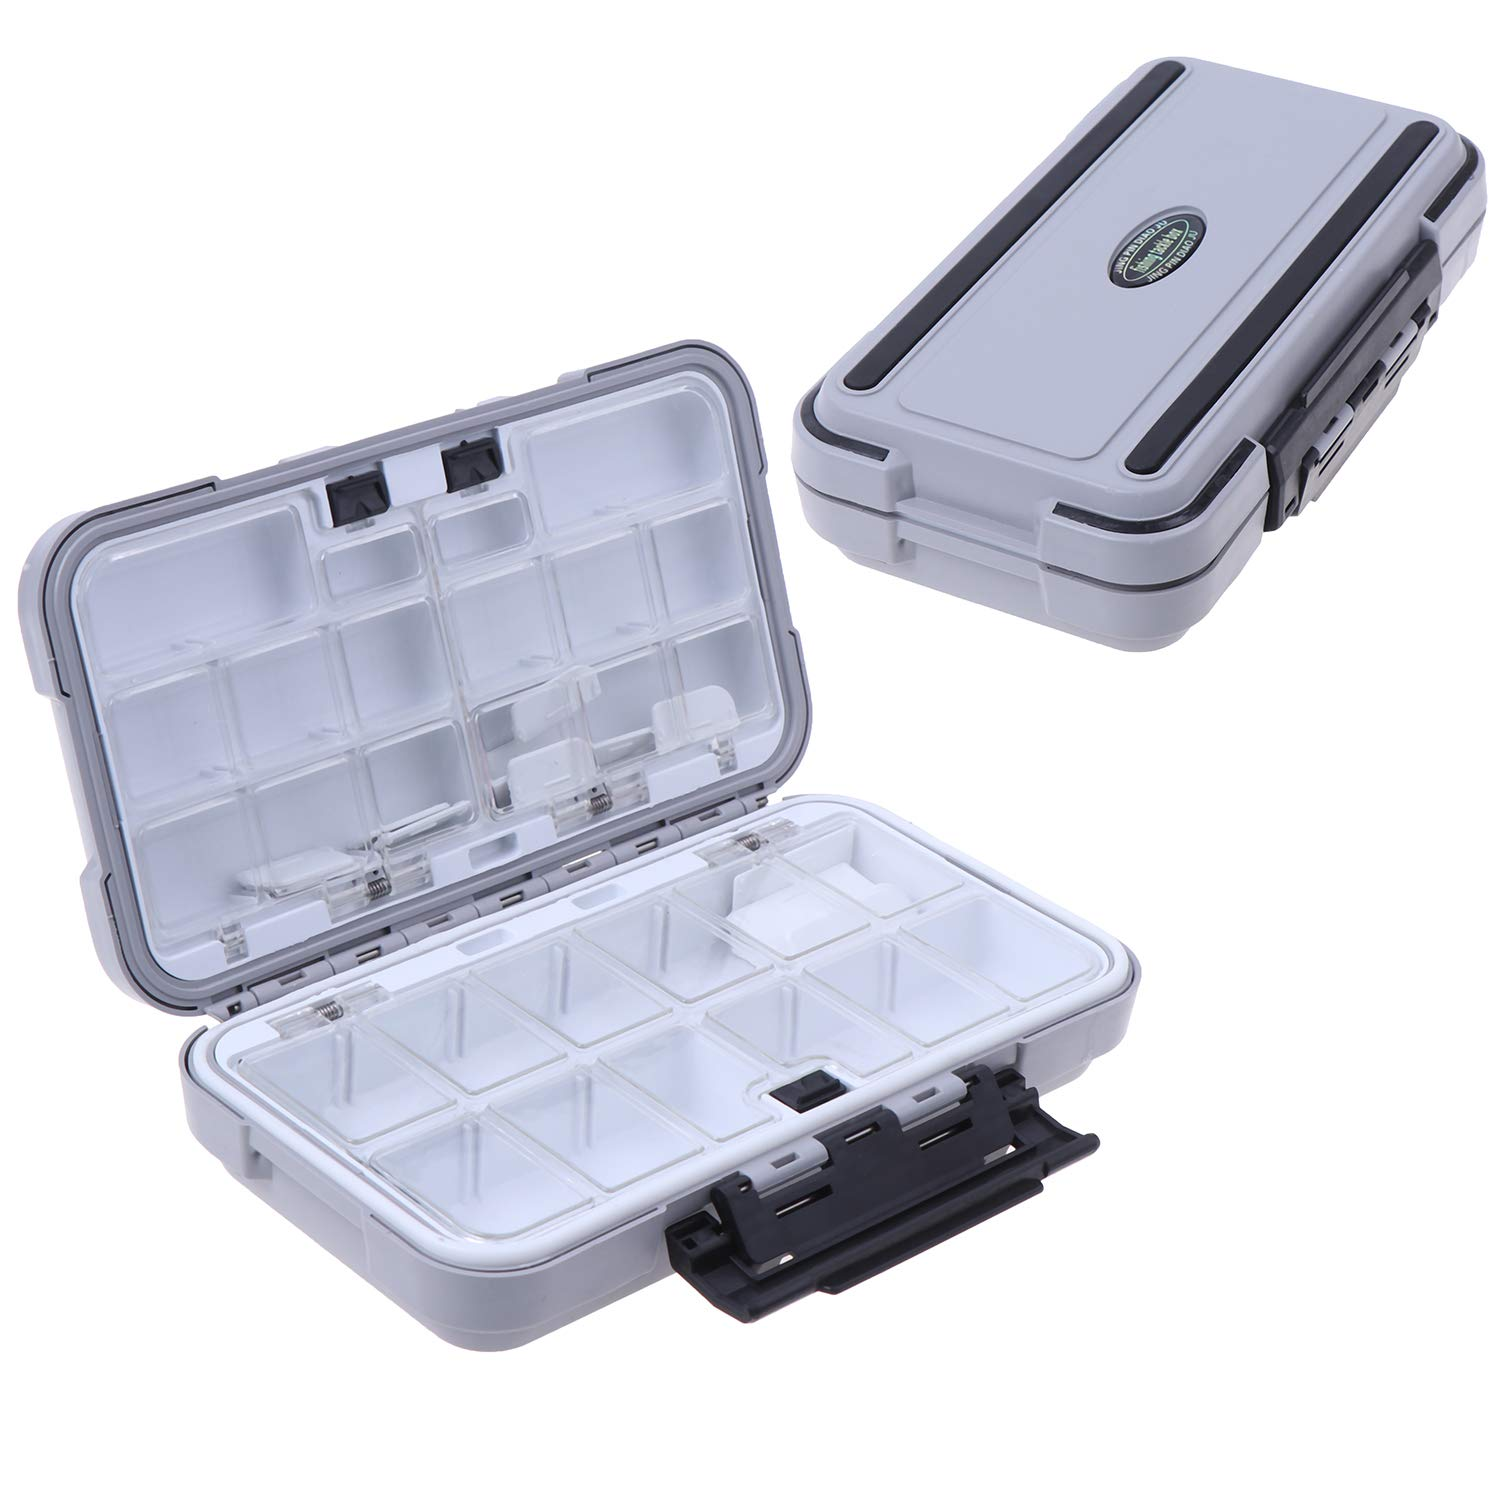 MeiMeiDa Waterproof Fishing Lure Box,Bait Storage Tackle Box Containers for Bait Casting Fishing Fly Fishing,Large Medium Lure Case Available